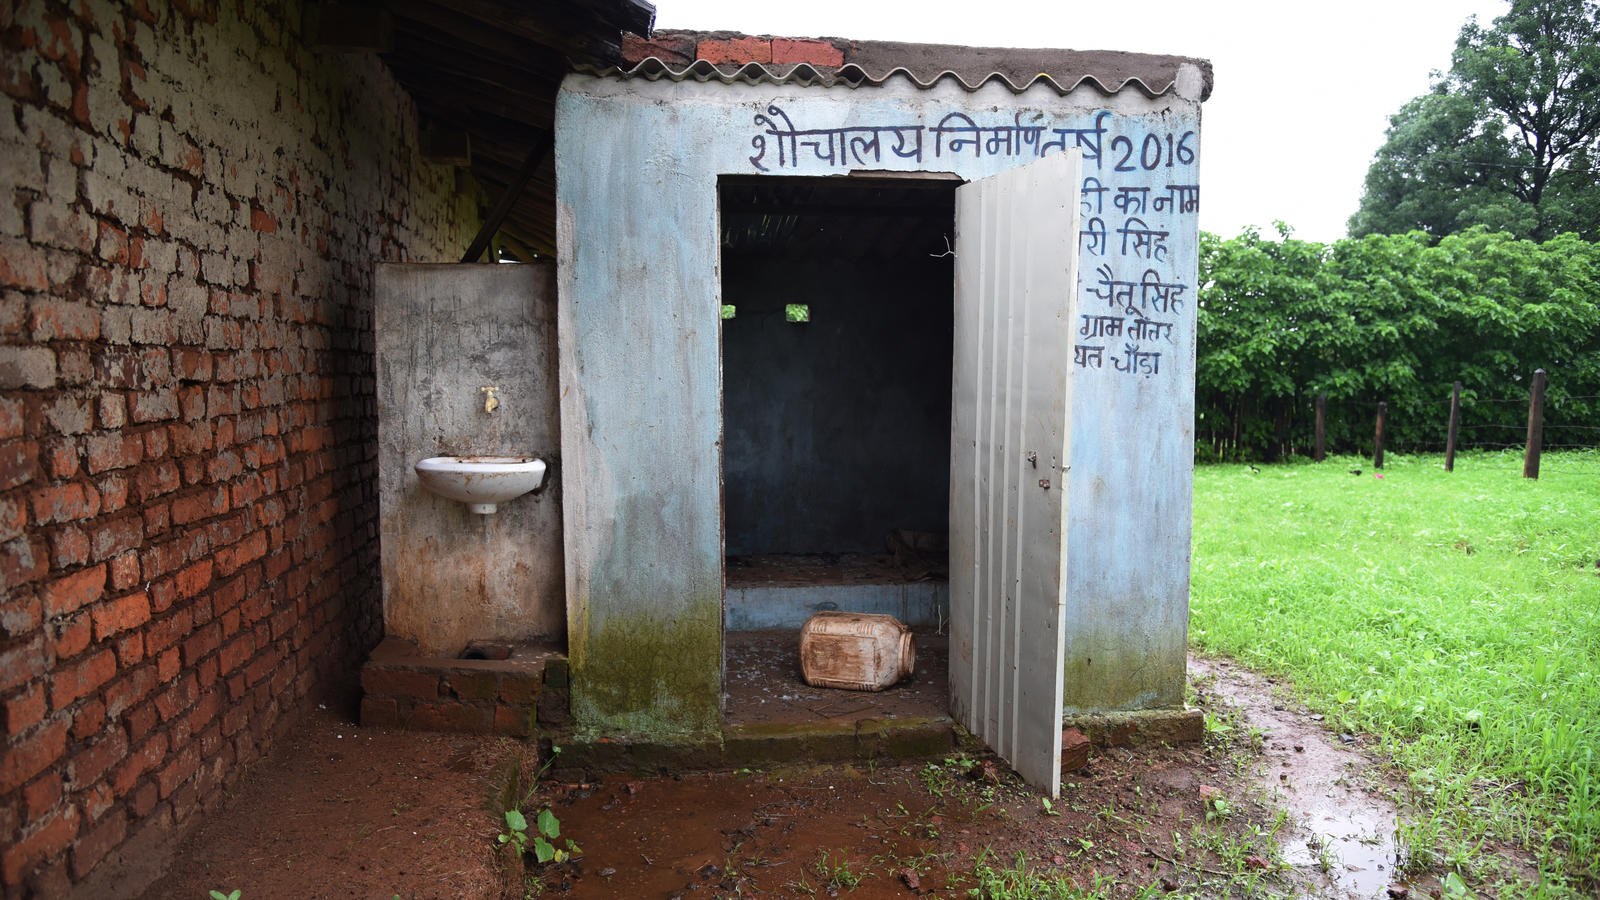 A newly constructed toilet under the Swachh Bharat Mission Tantar Village, Baiga Chak, Dindori, Madhya Pradesh, India. July 2017.